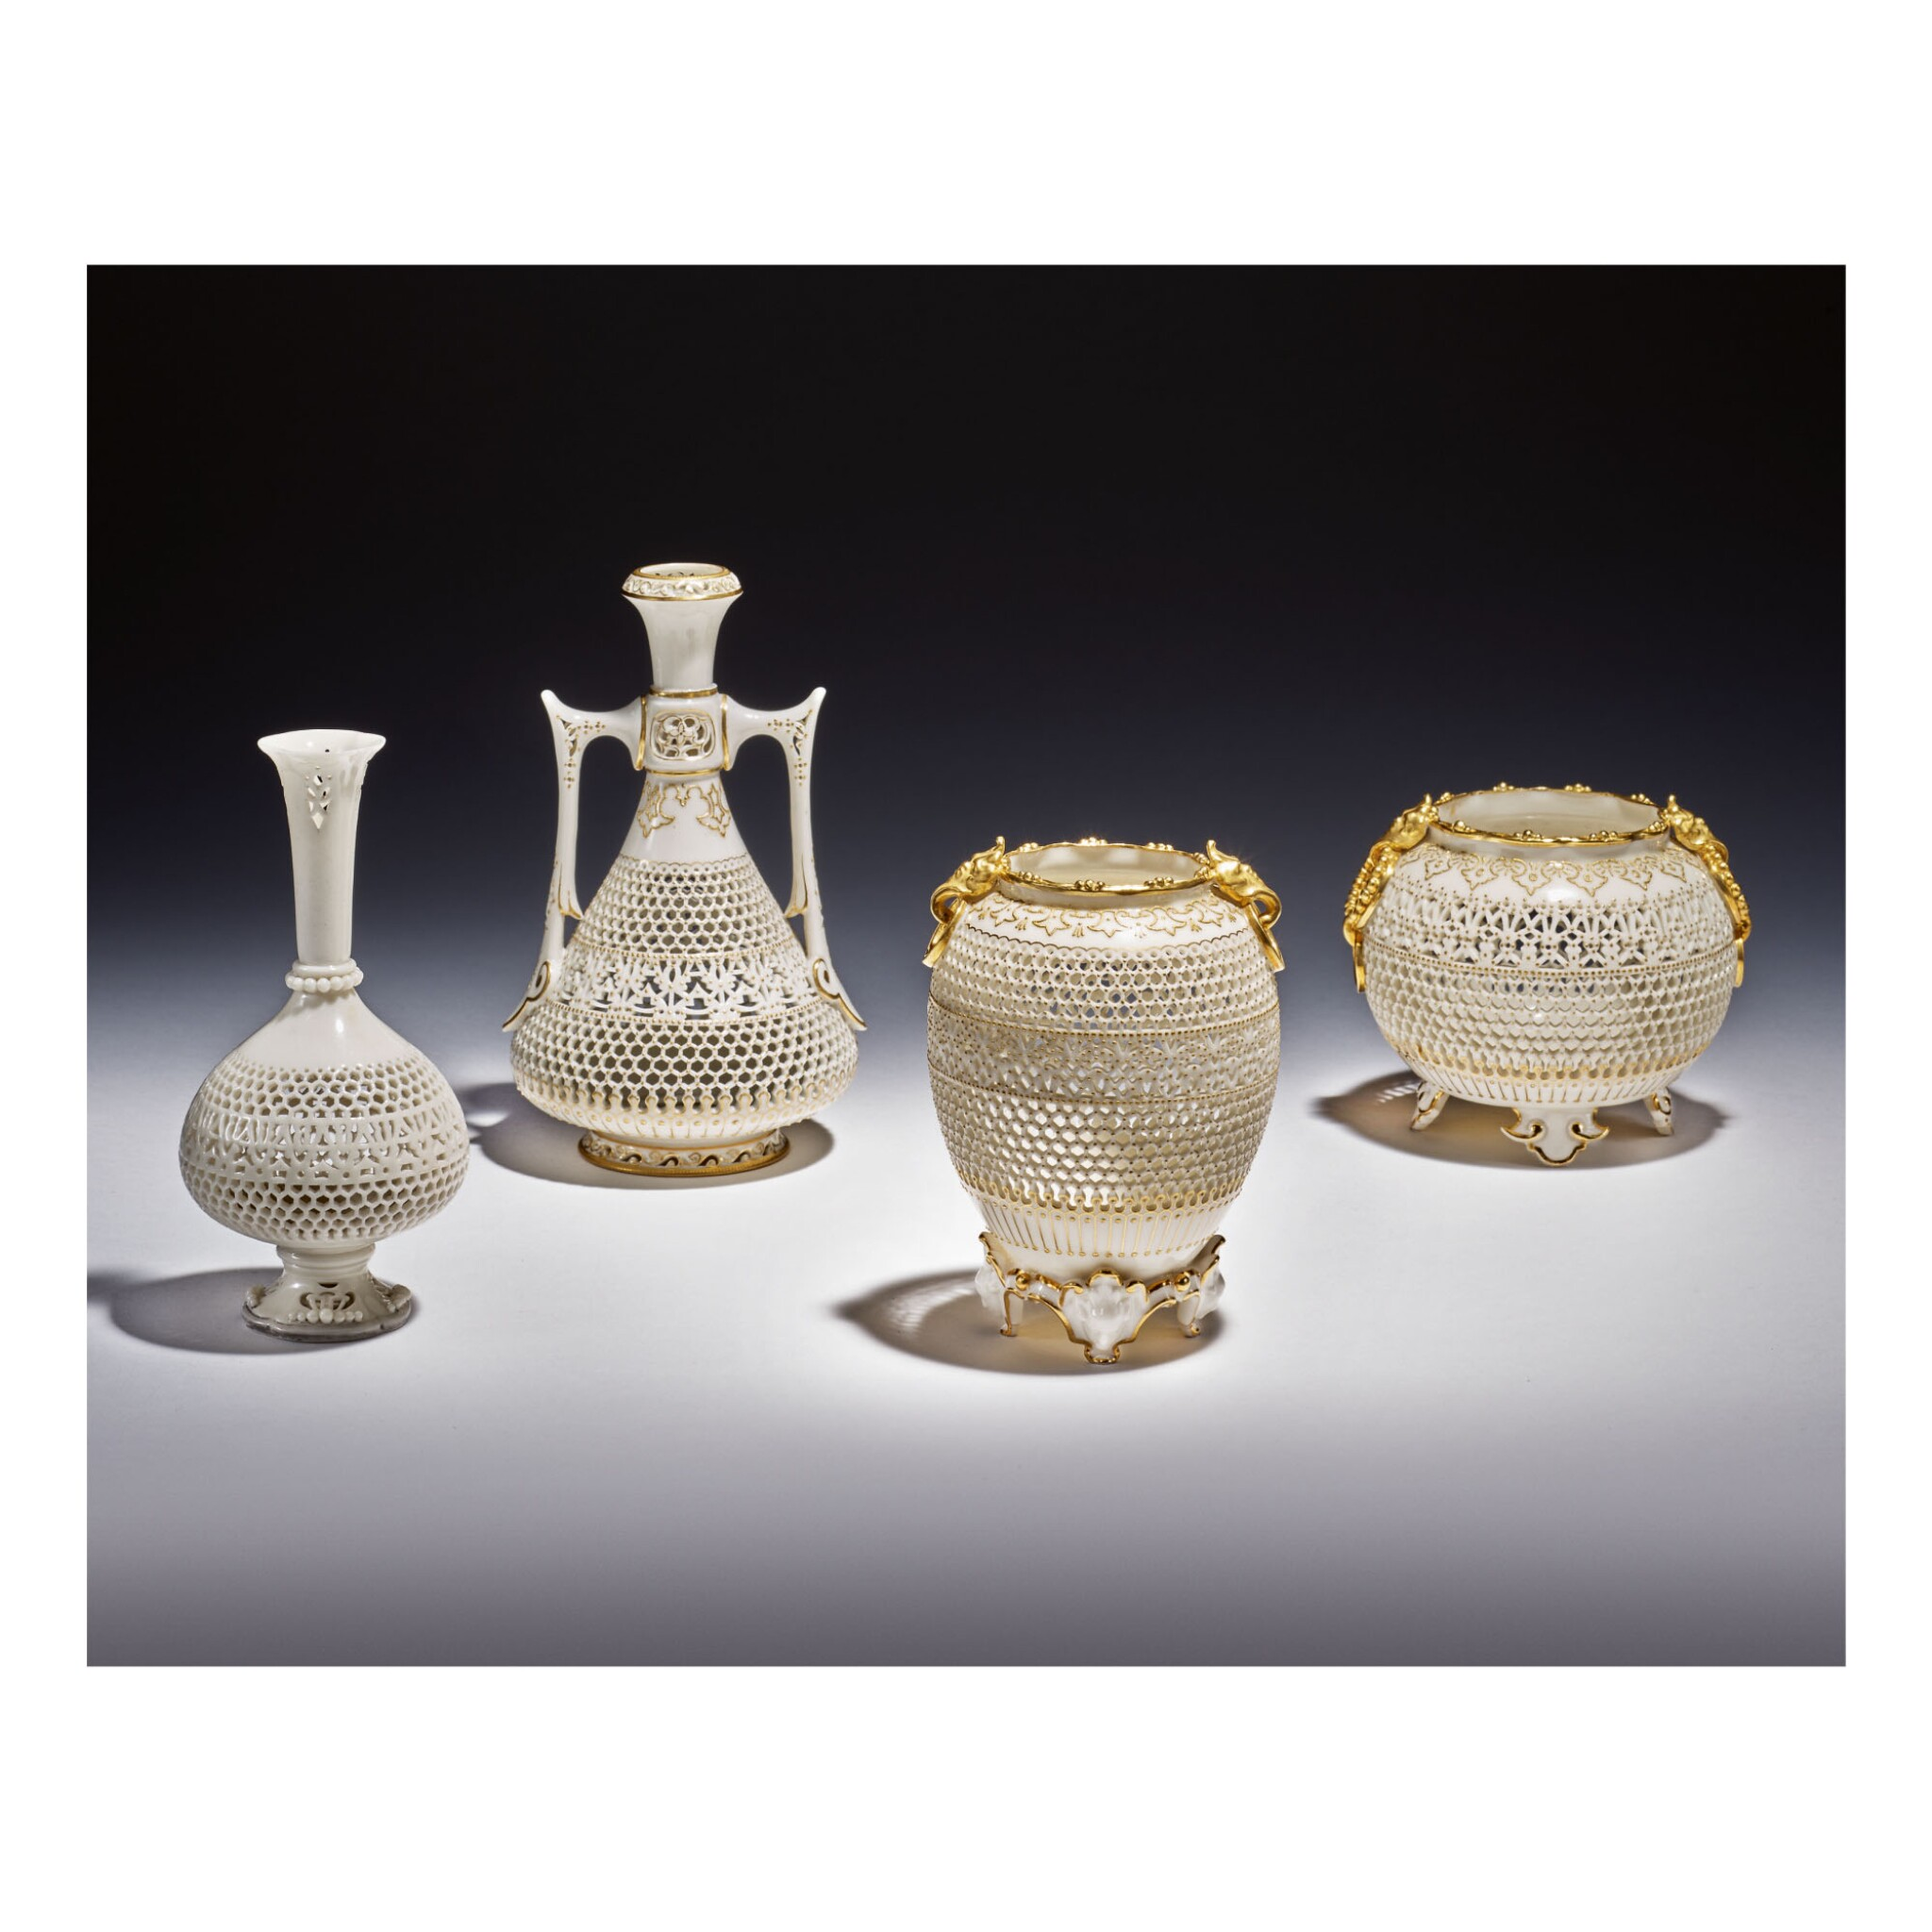 FOUR ROYAL WORCESTER RETICULATED PORCELAIN VASES BY GEORGE OWEN 1912, 1919, 1923 AND 1929